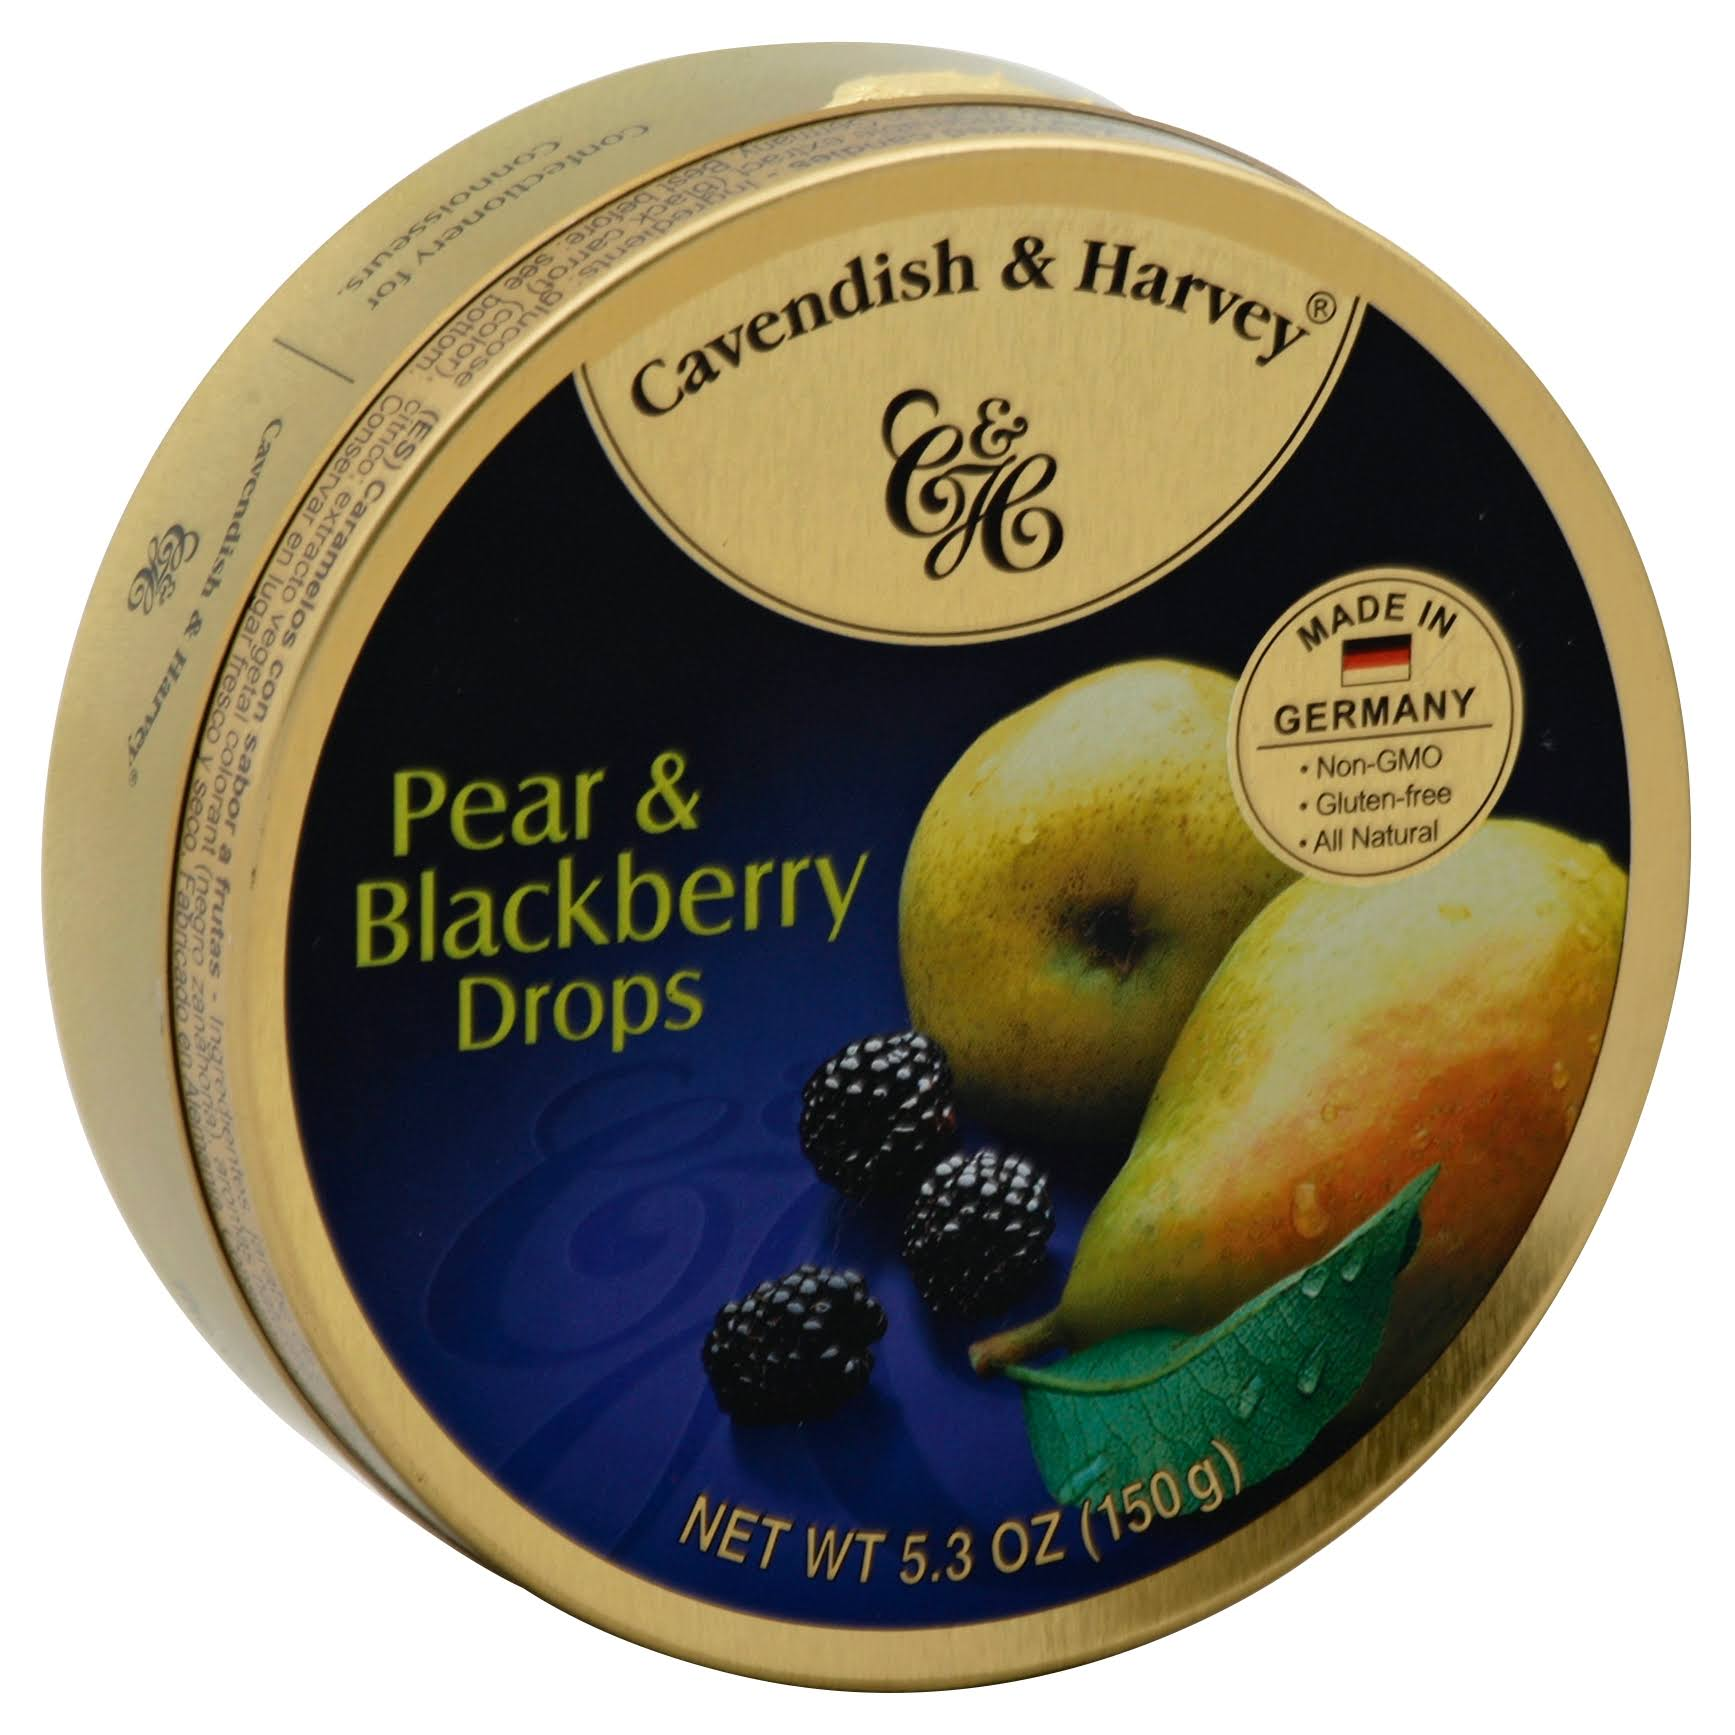 Cavendish & Harvey Drops - Pear & Blackberry, 200g